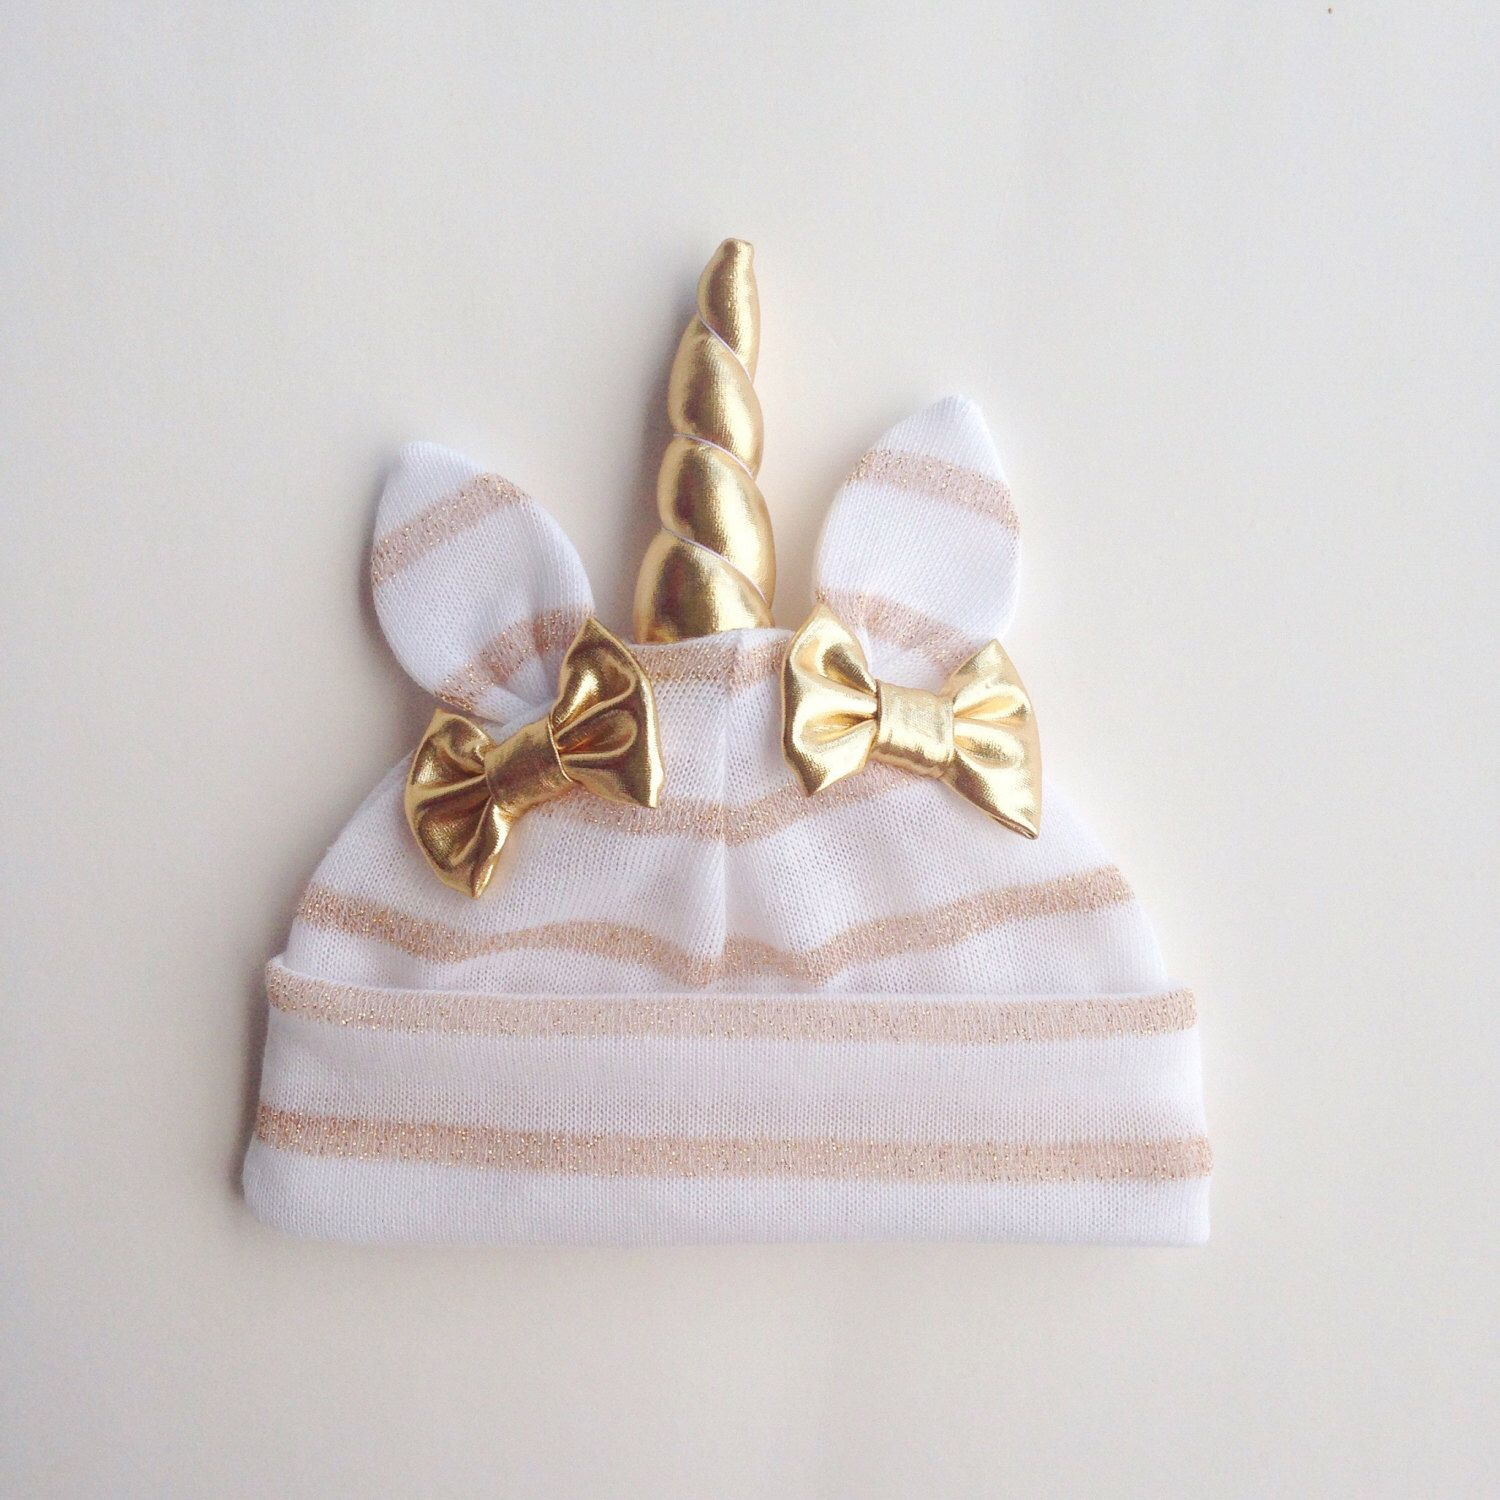 pin first half baby gold and crown newborn birthday pink headband